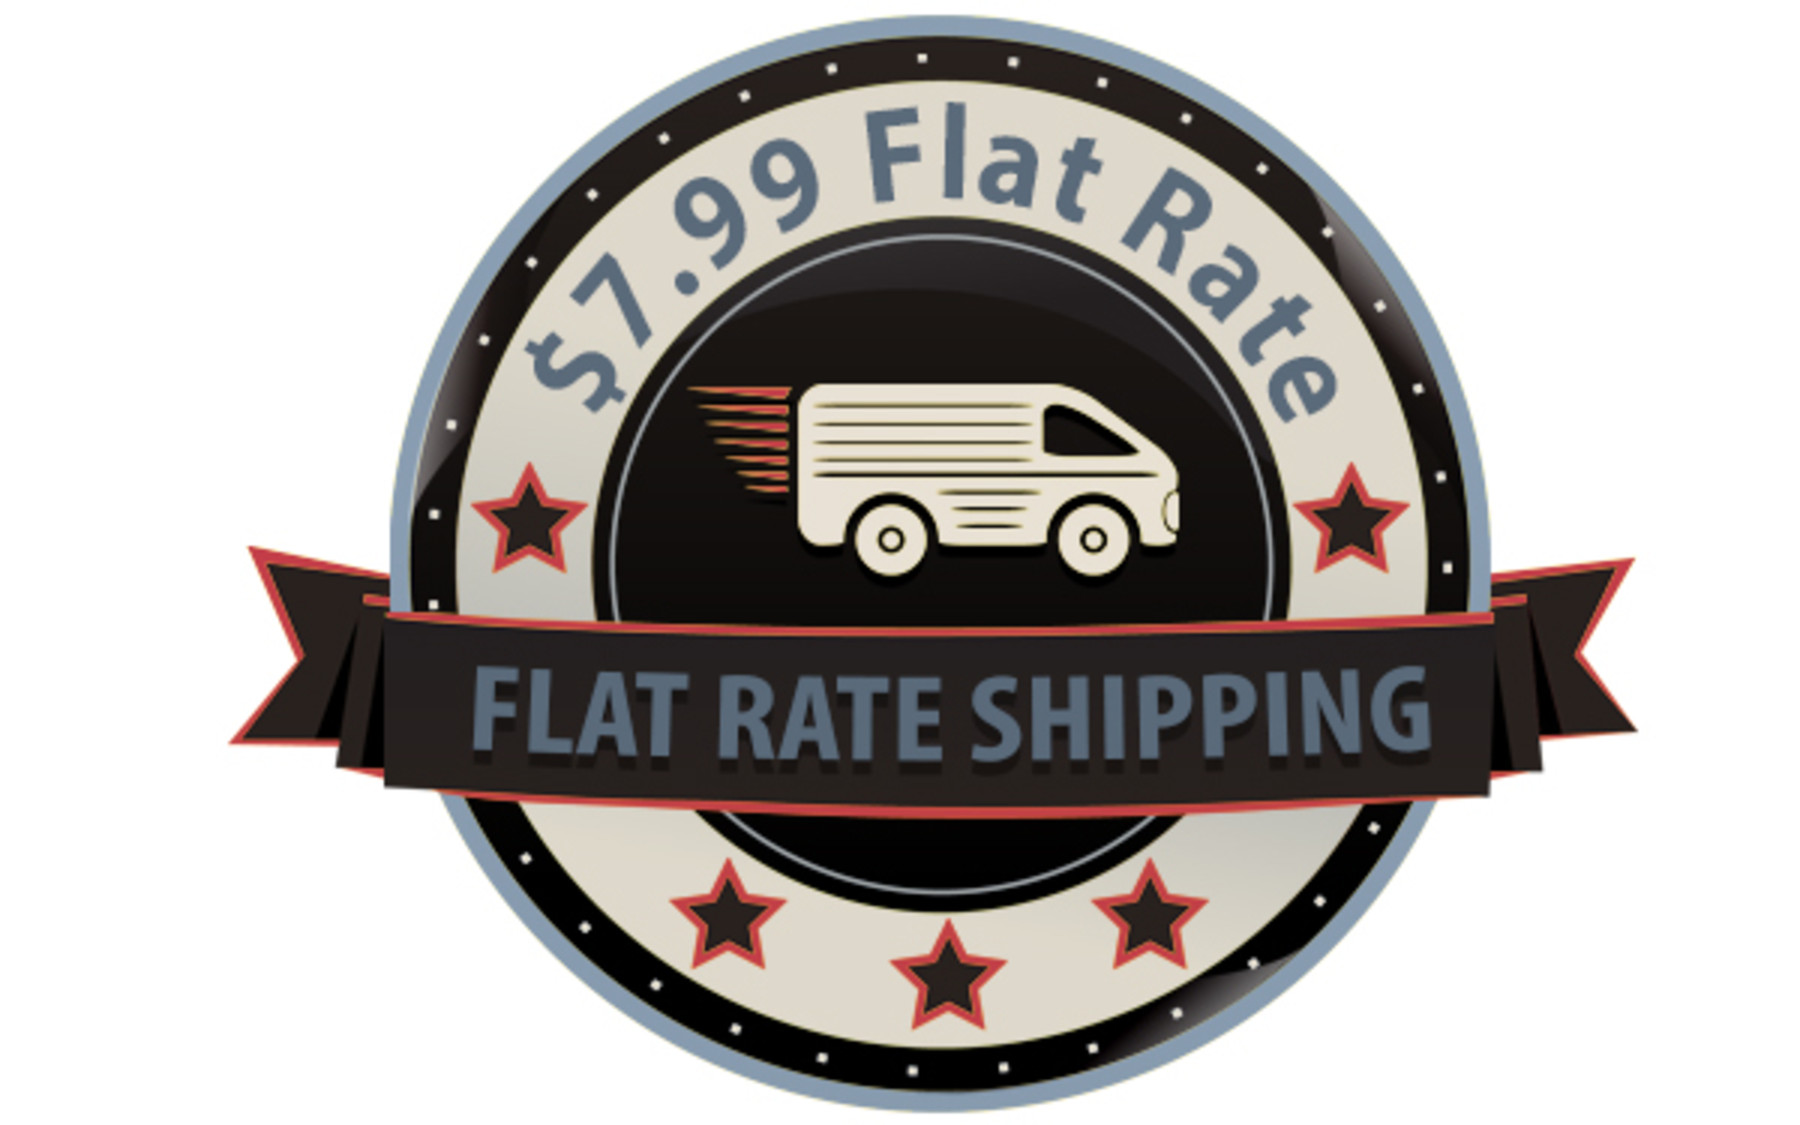 $7.99 Flat Rate Shipping